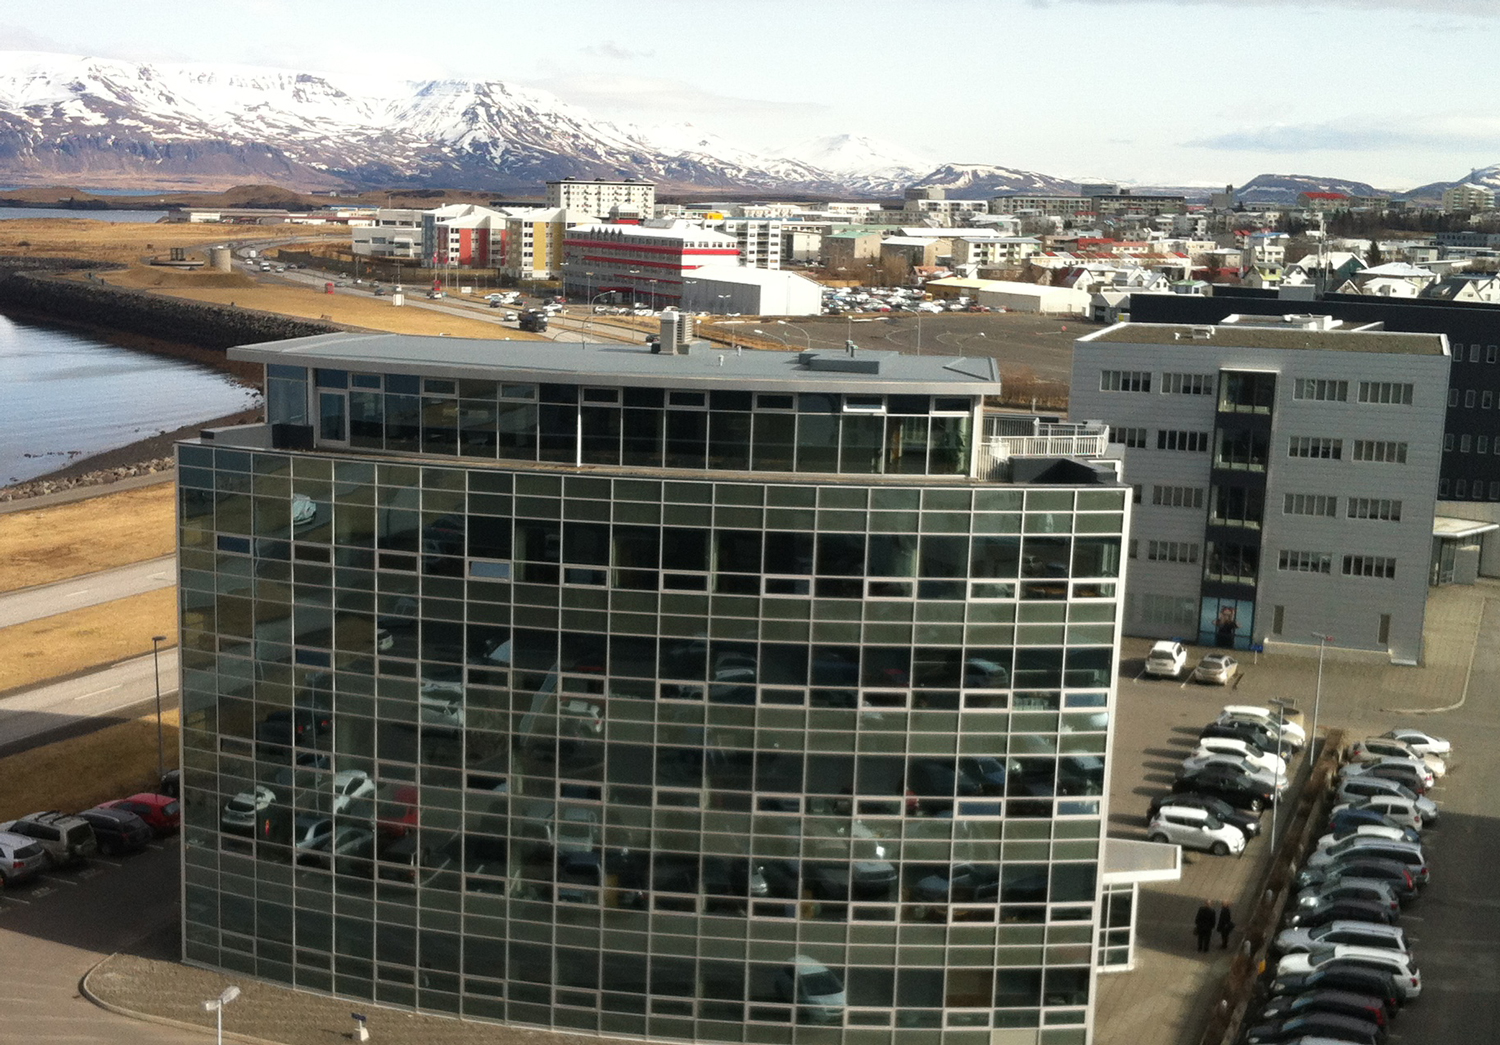 Iceland Chamber of Commerce has moved to a new location